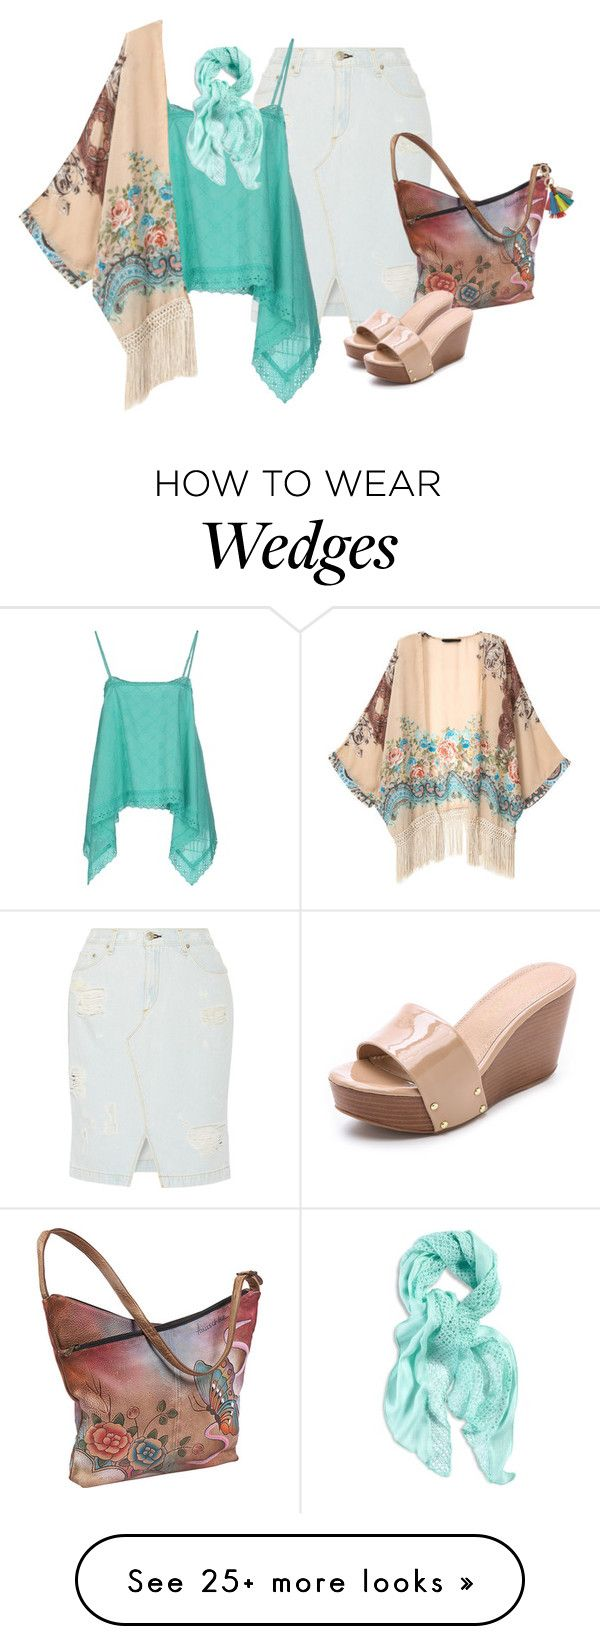 """give them spring, and they'll want summer!"" by rvazquez on Polyvore featuring rag & bone, Twin-Set, Anuschka, Splendid, Chico's, Rebecca Minkoff, Summer and boho"